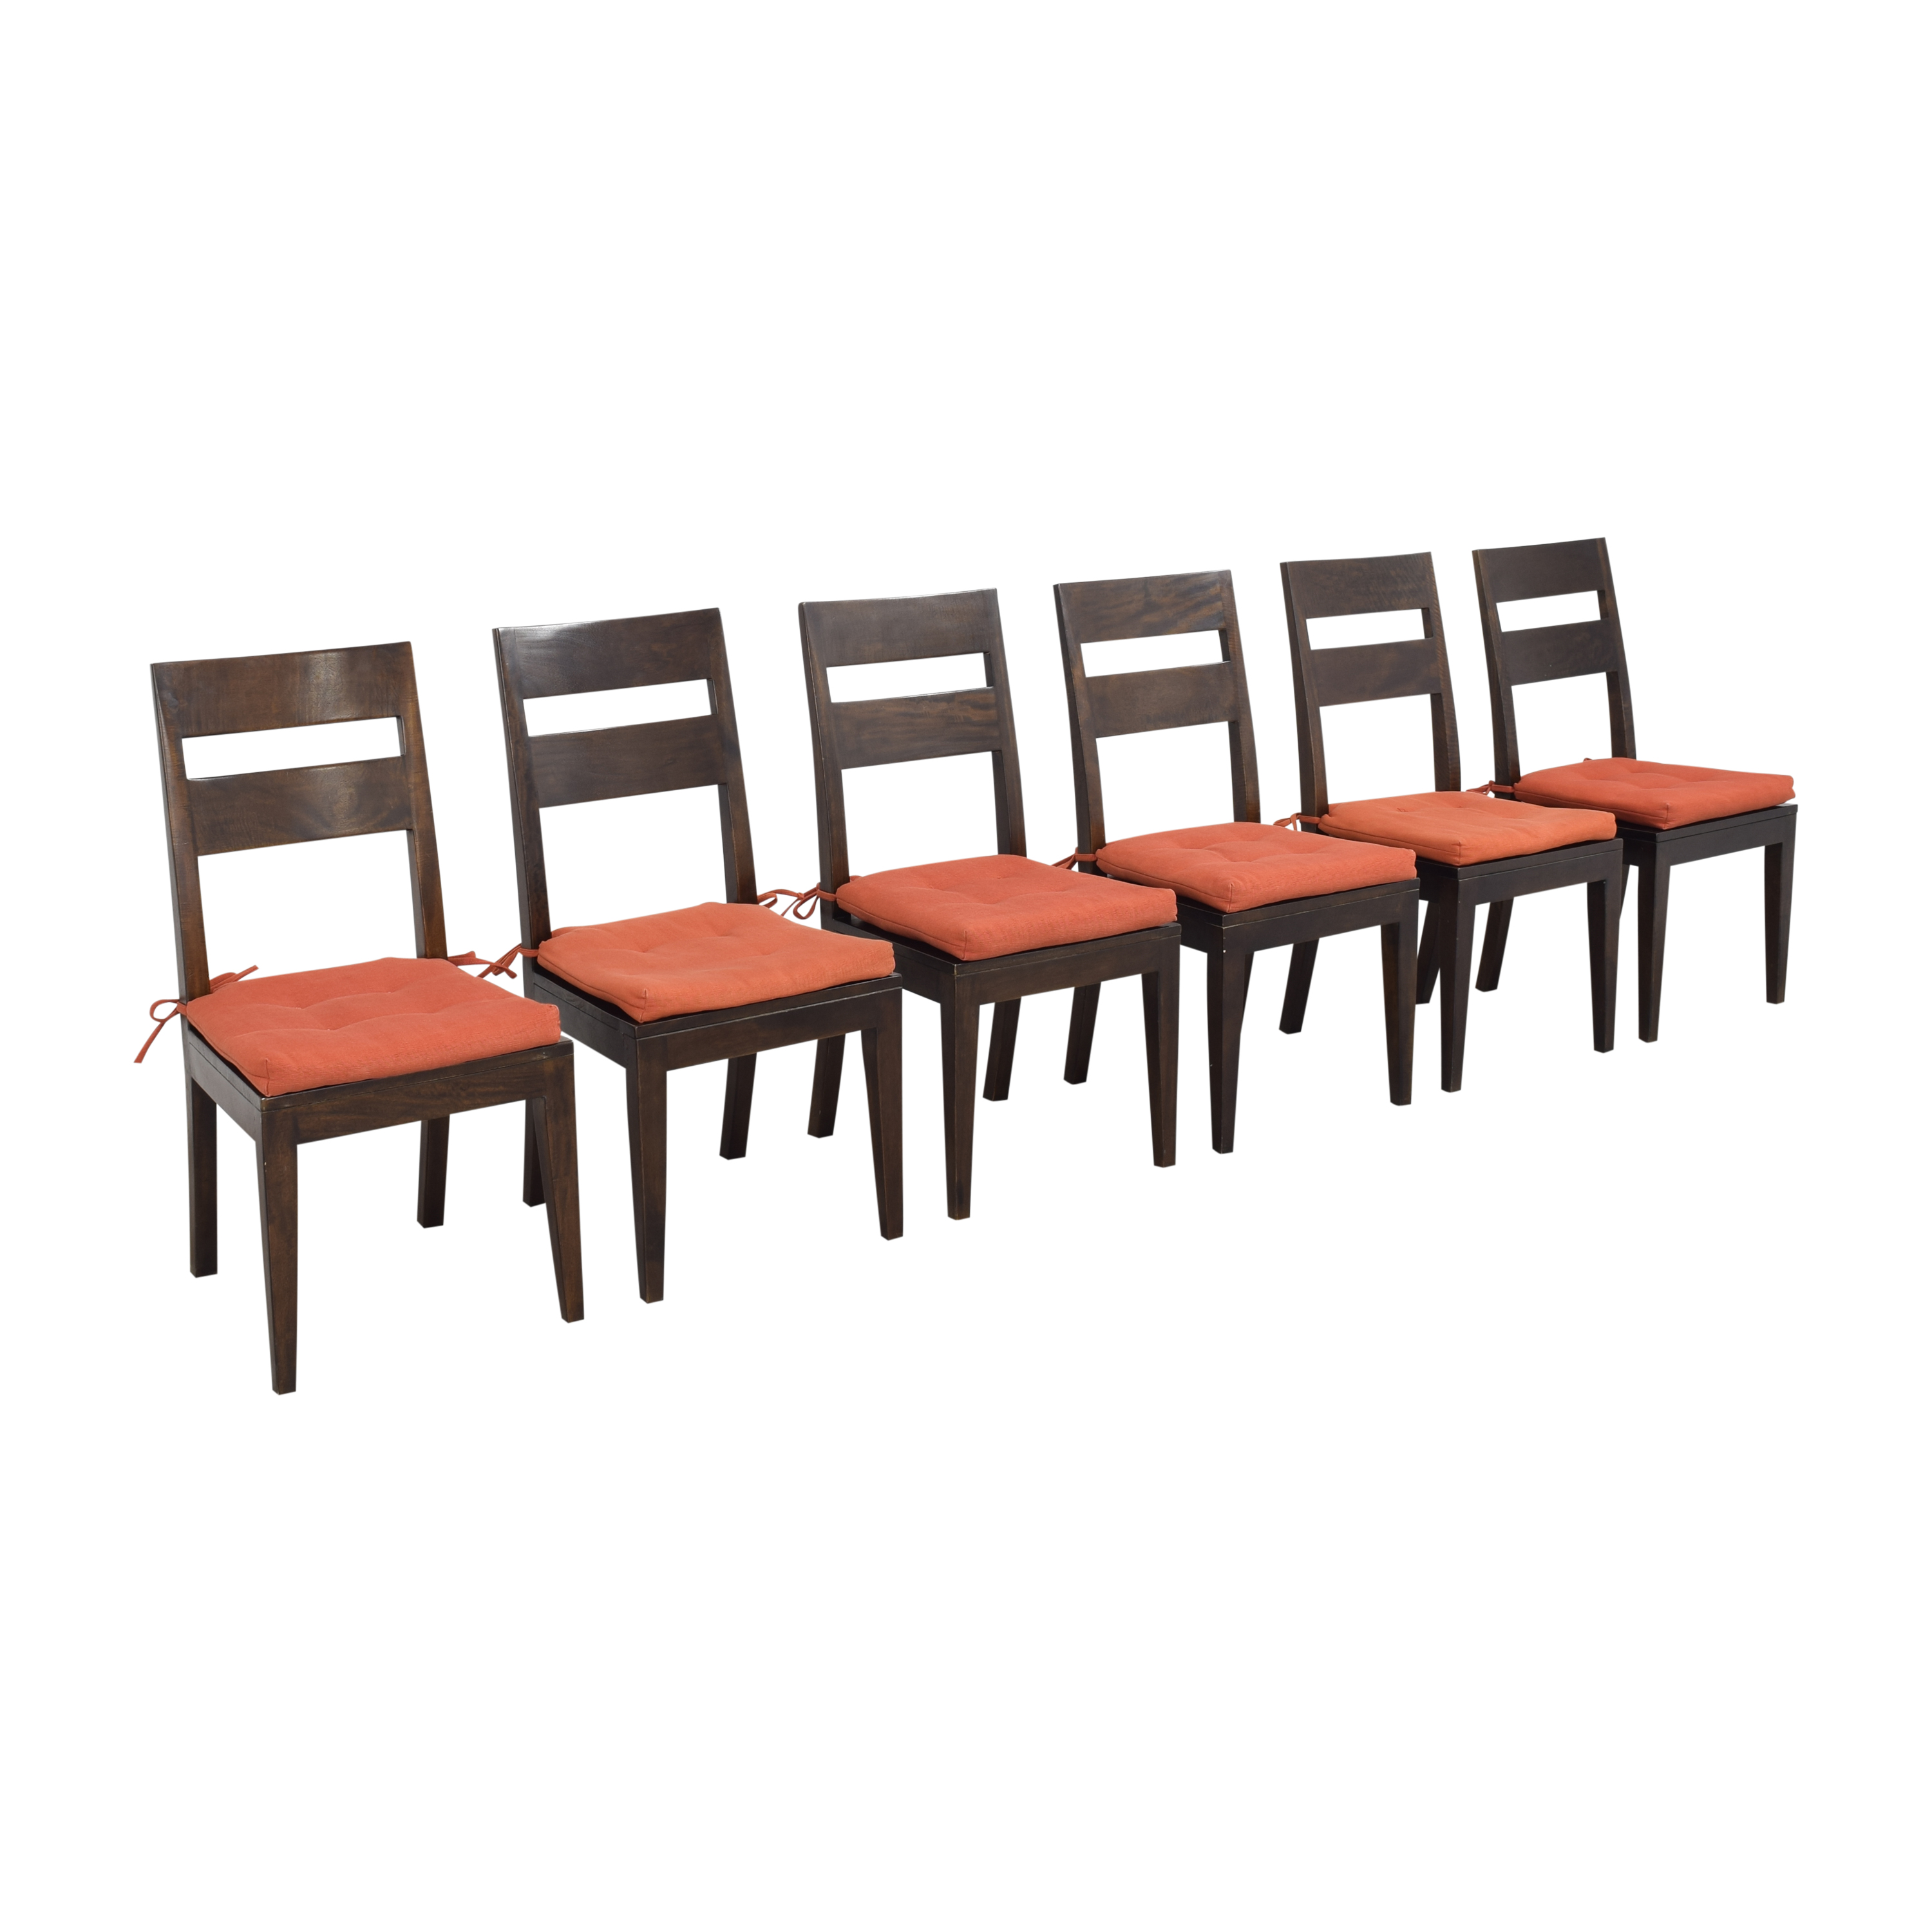 Crate & Barrel Basque Dining Side Chairs sale